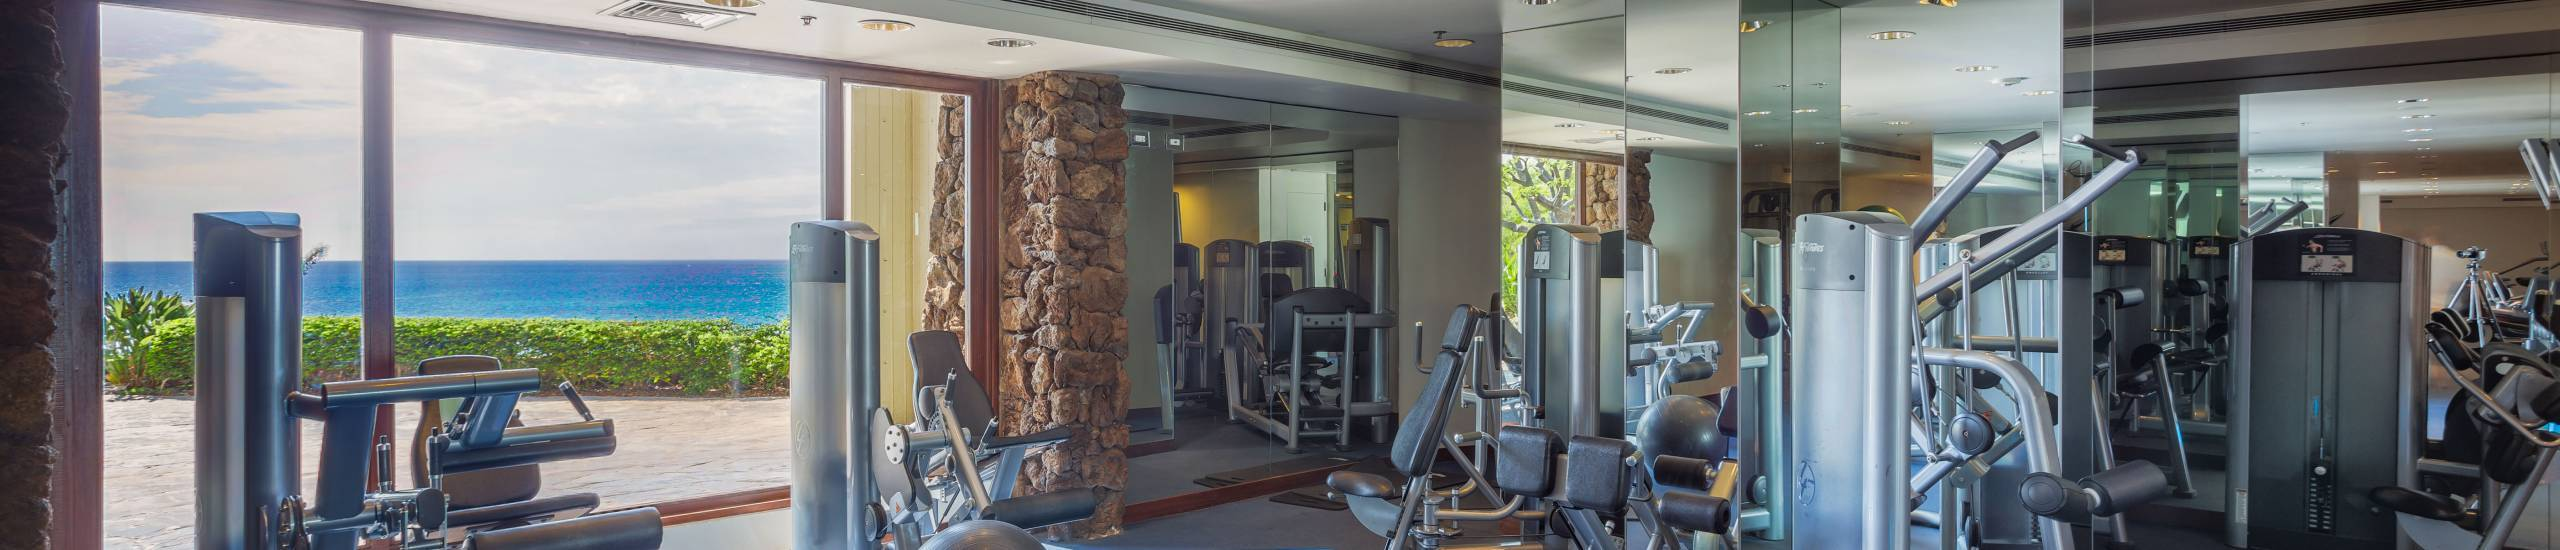 Mauna Kea Resort Fitness Facility